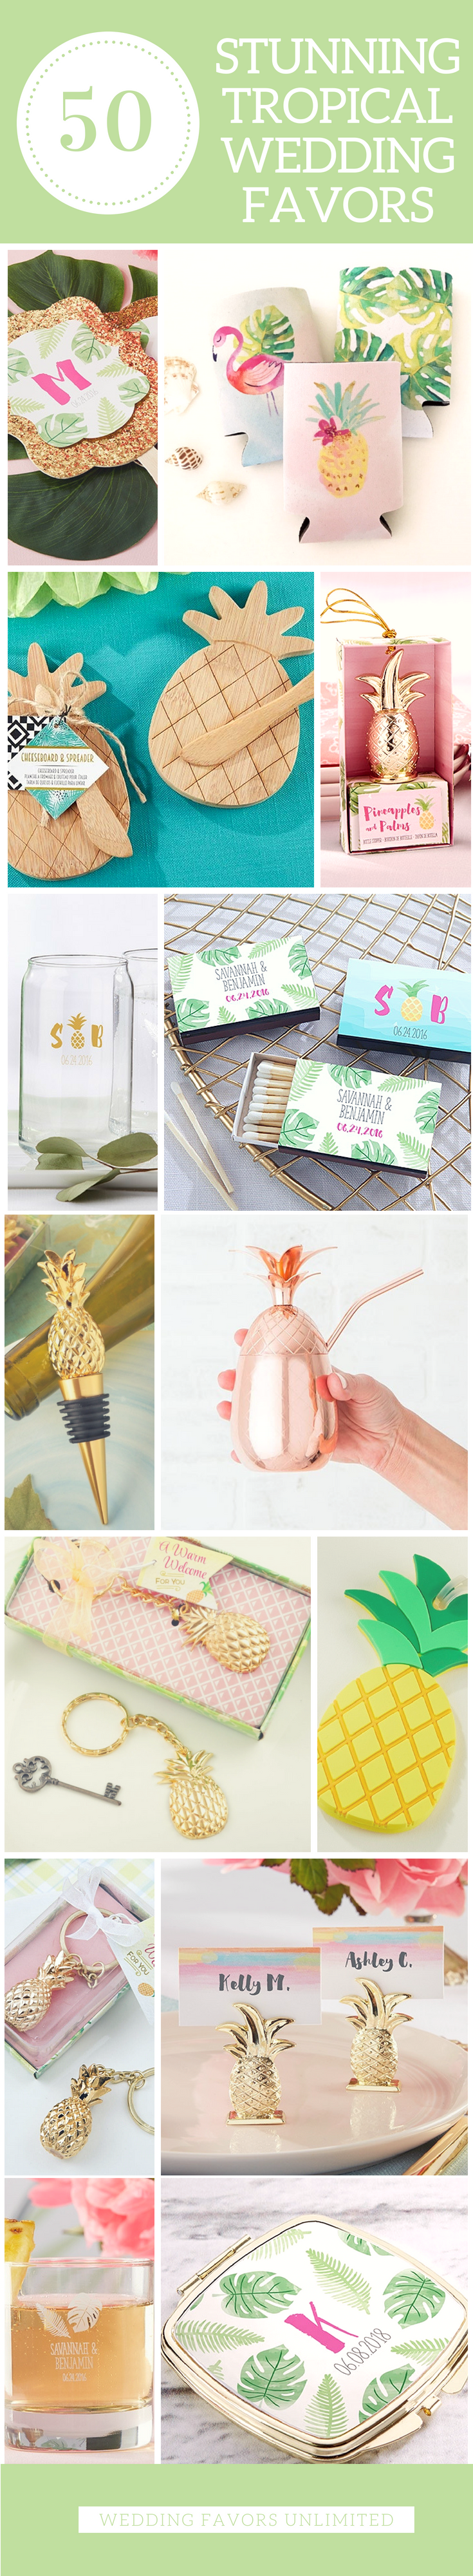 50 Stunning Tropical Wedding Favors To Slay The Summer - Check out ...